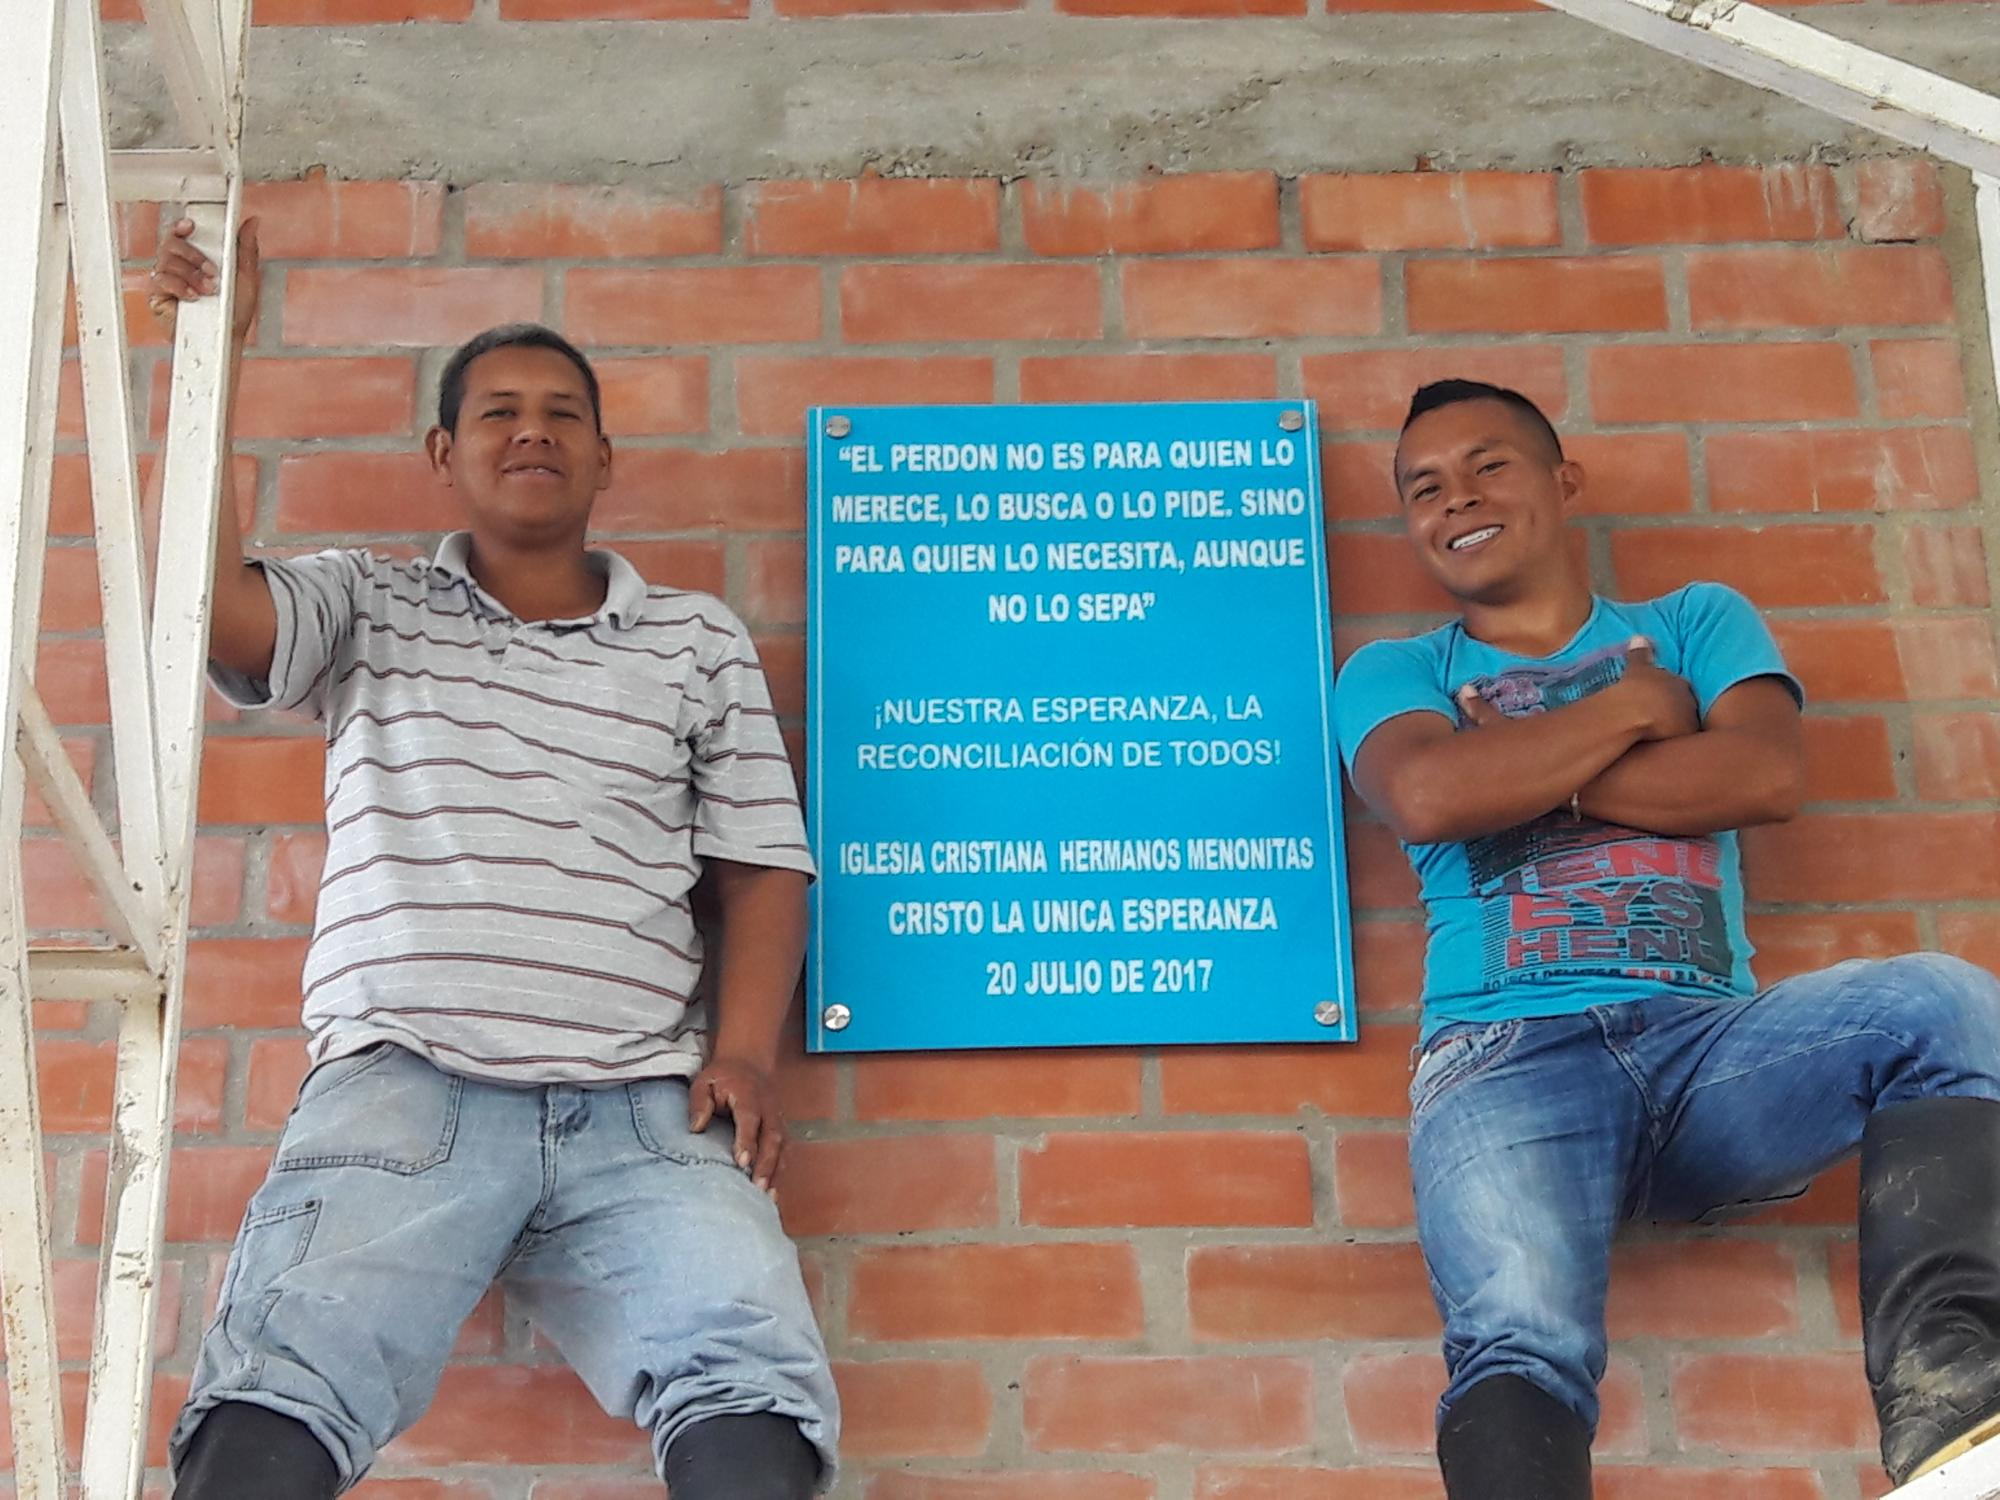 "Misael y Luis Yonda. Installation of the memory plaque in the sports arena in the village of La Esperanza. ""Forgiveness is not for the one who deserves it, seeks it or asks for it but for the one who needs it, although they are not conscious of it. Our hope is reconciliation for all! Christ the Only Hope Mennonite Brethren Church. 20 July 2017."" Photo: Sebastián Navarro Medina"